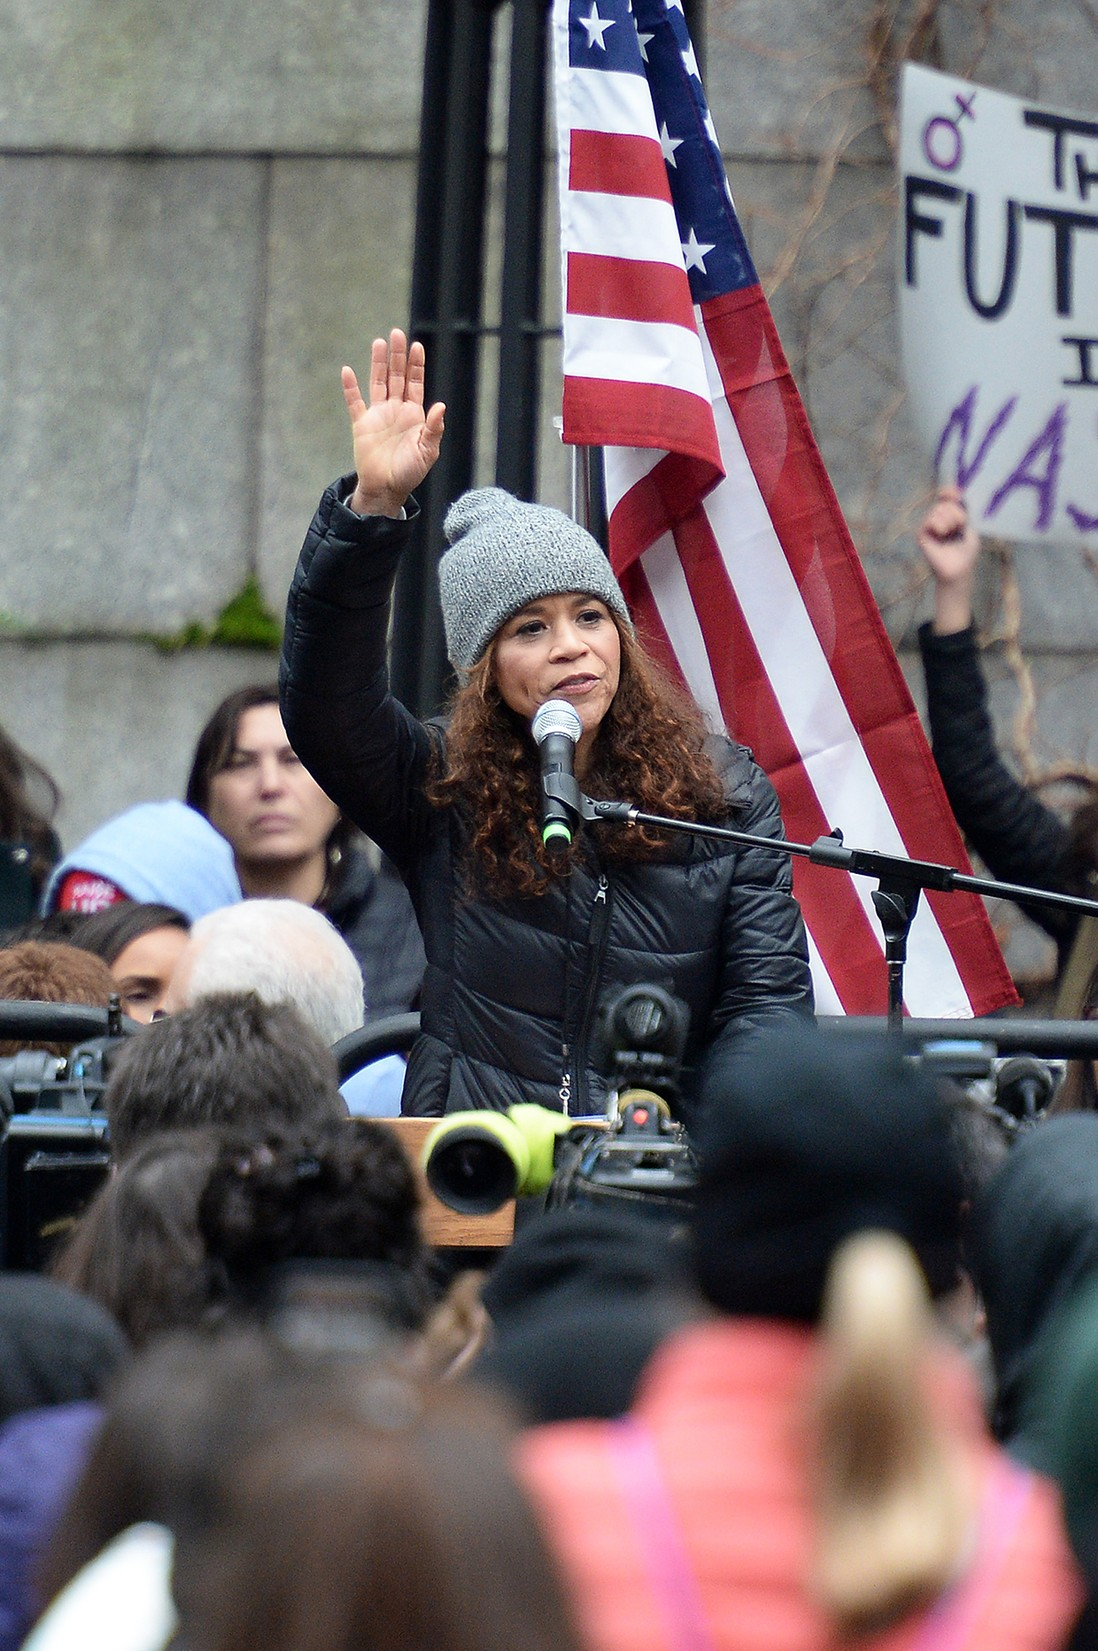 Rosie Perez speaks during the 2017 Women's March - Sister March in New York on January 21, 2017 in New York City.  (Photo by Andrew Toth/WireImage)